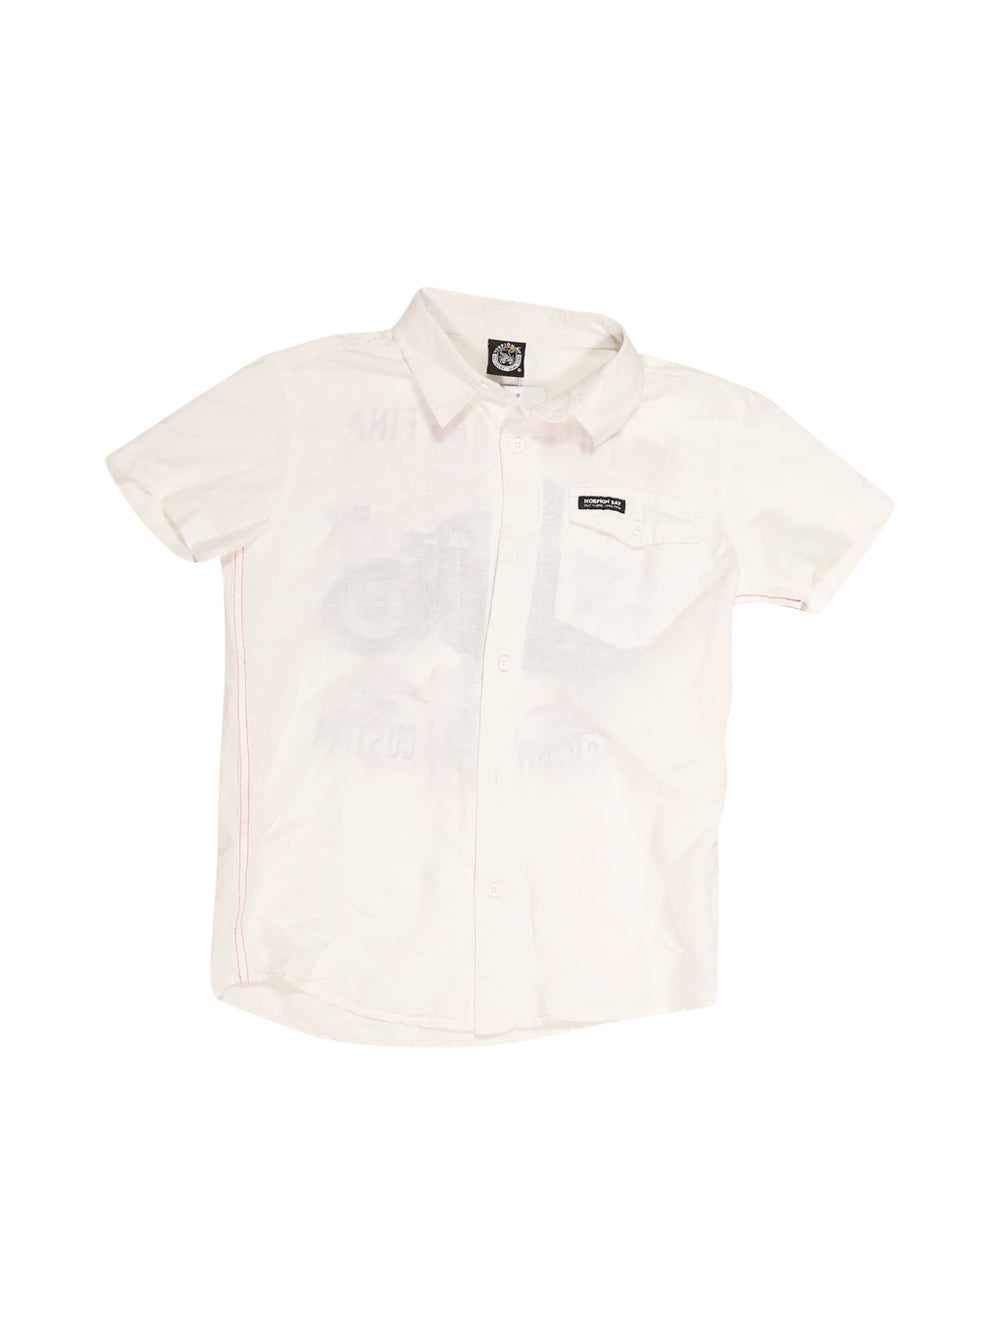 Front photo of Preloved Scorpion Bay White Boy's shirt - size 10-12 yrs